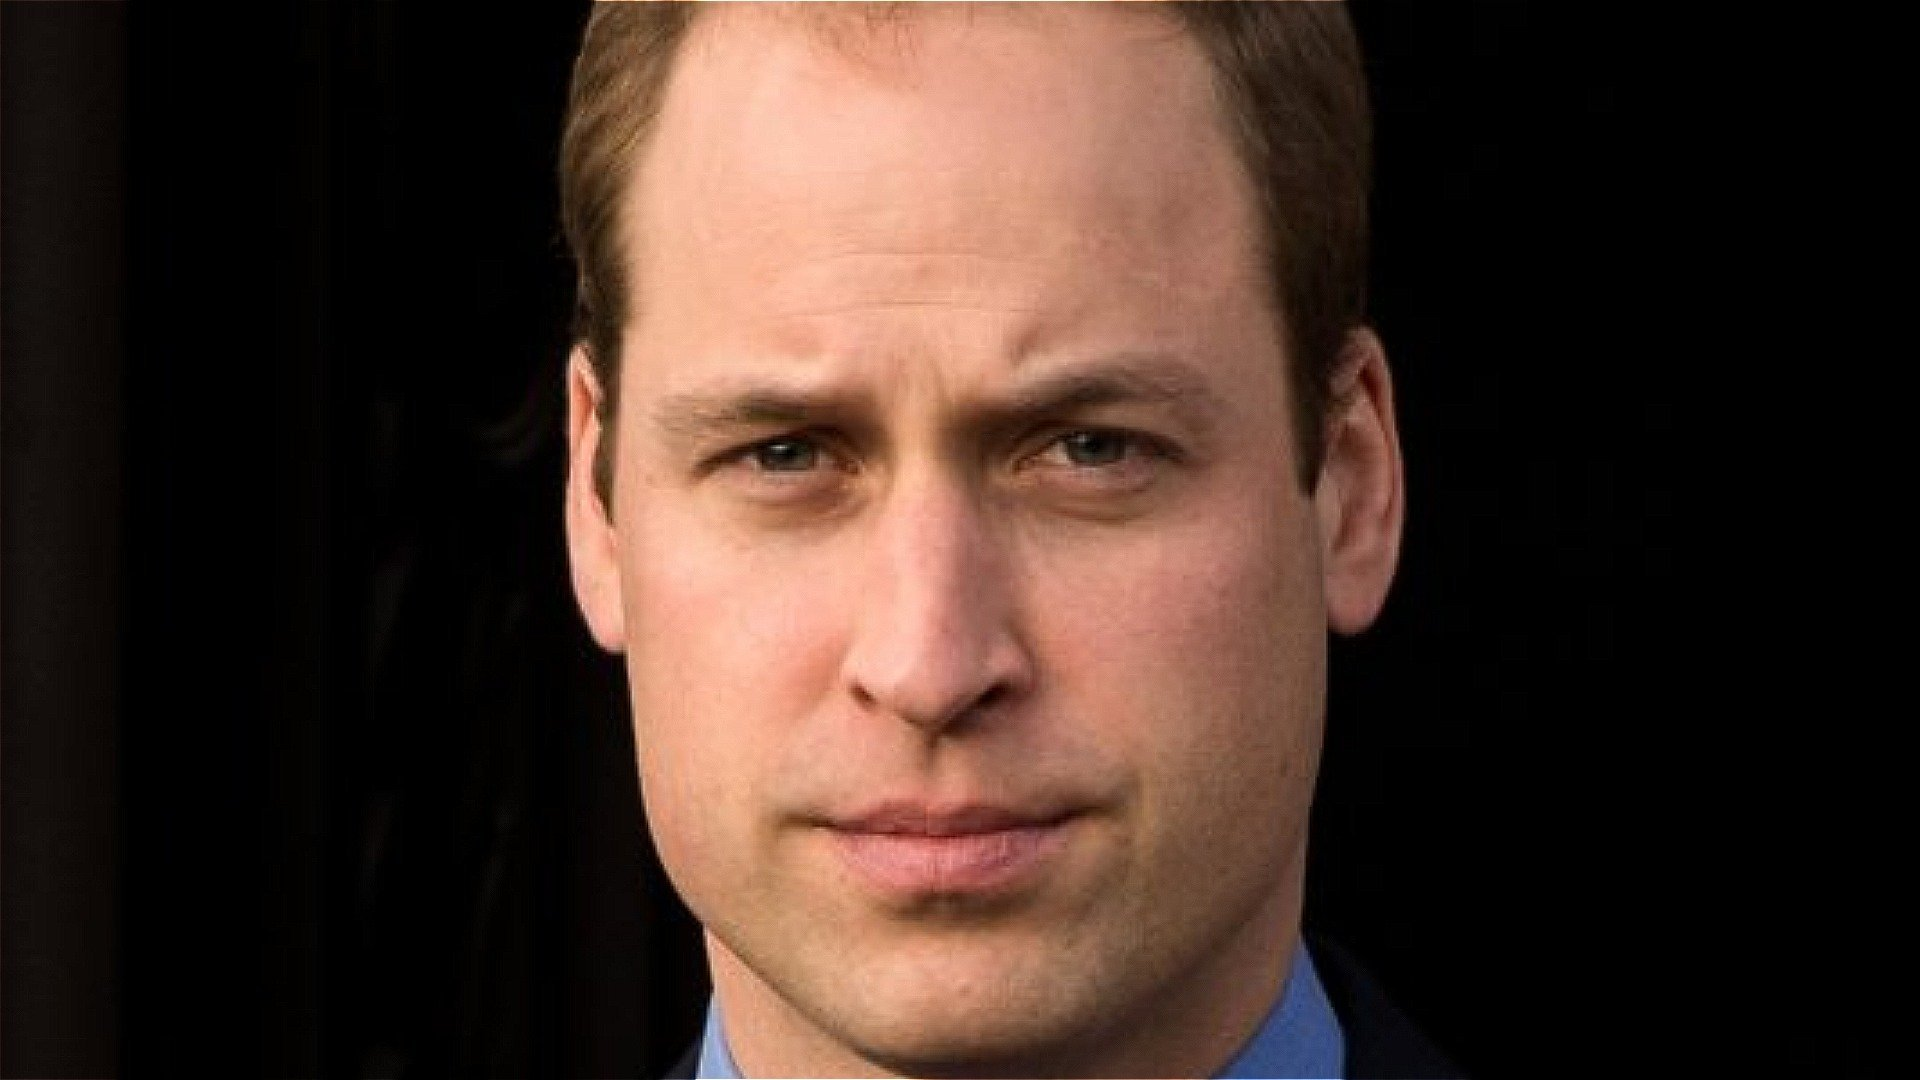 Here's The Woman Behind Prince William's Alleged Affair